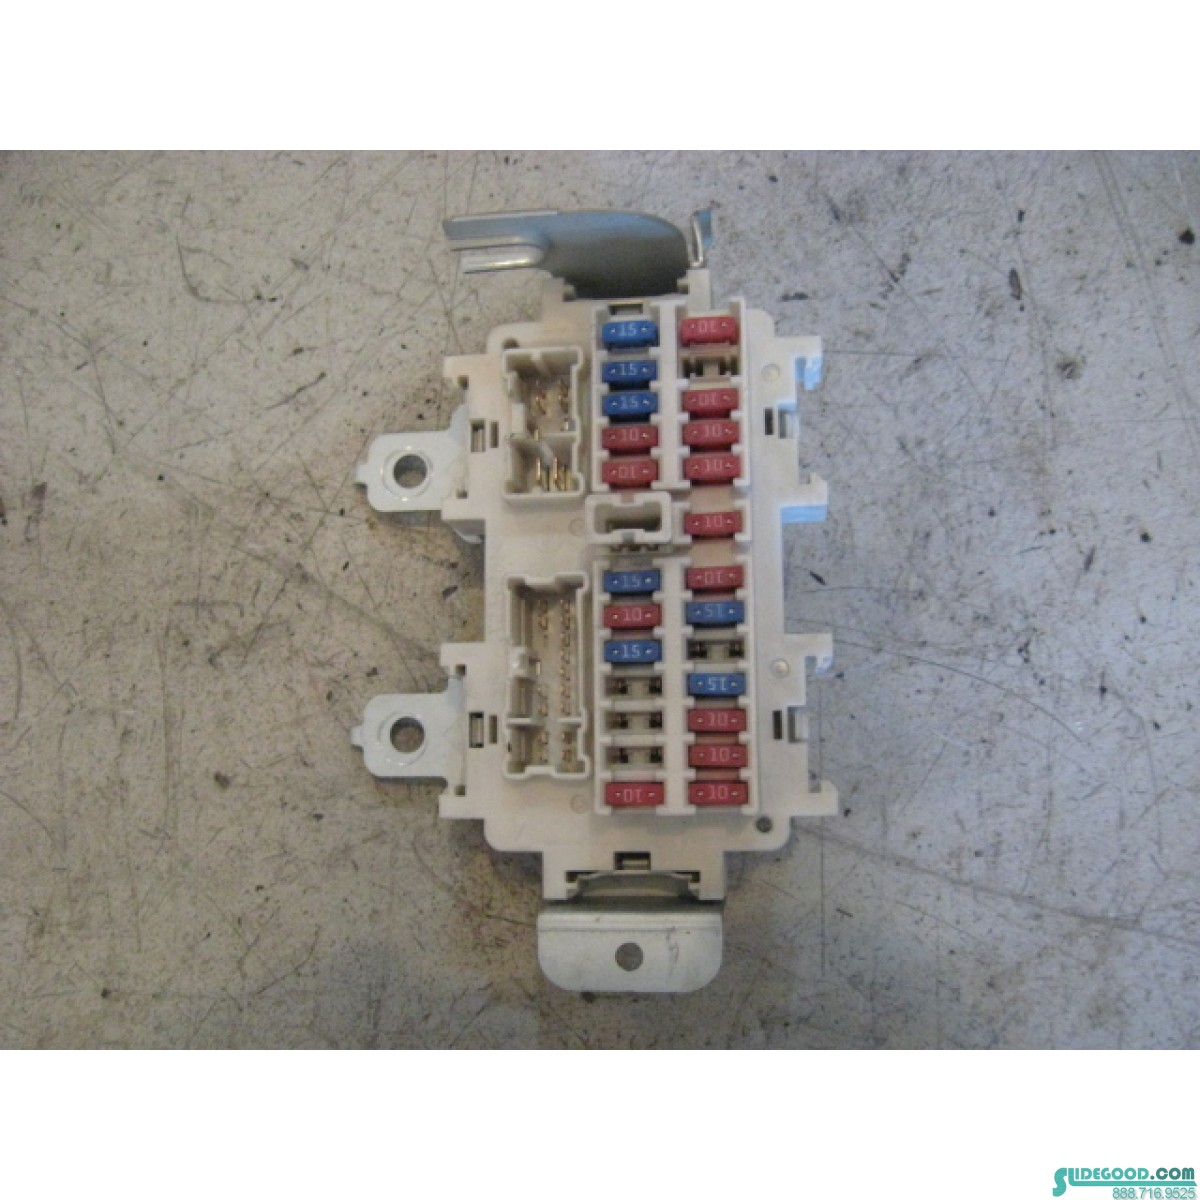 03 Nissan 350z Fuse Box Touch Wiring Diagrams Cadillac Escalade Diagram Interior R9736